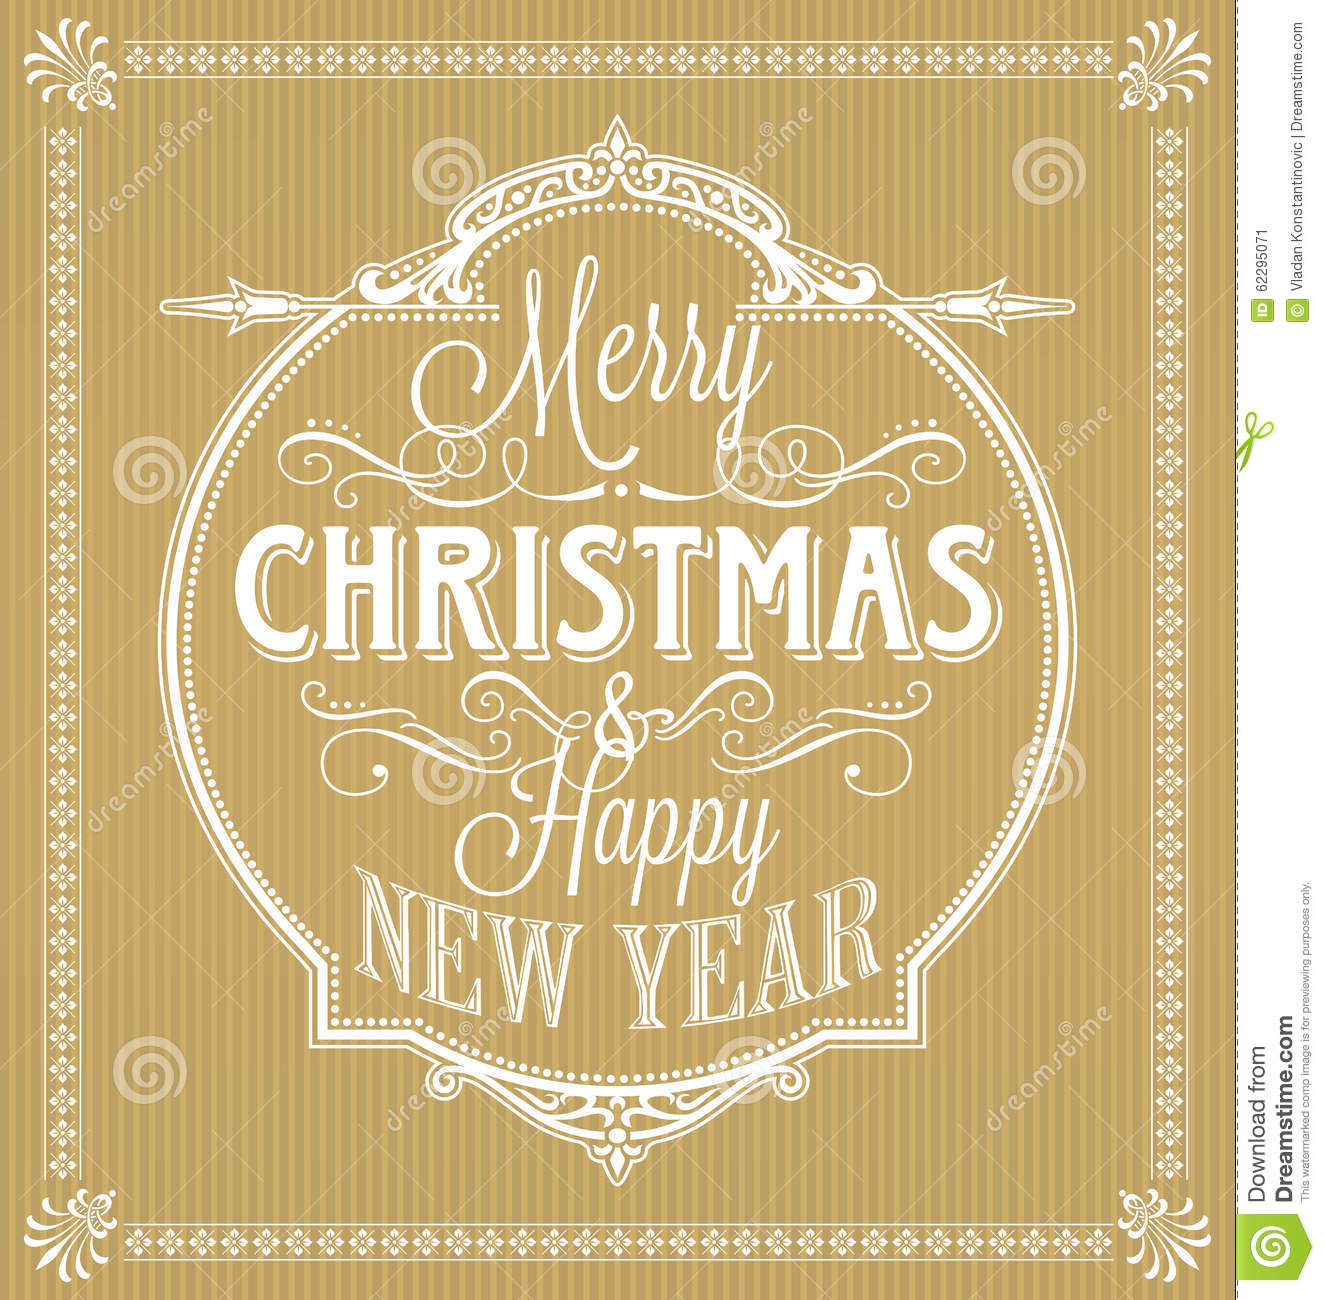 Vintage Merry Christmas And Happy New Year Calligraphic